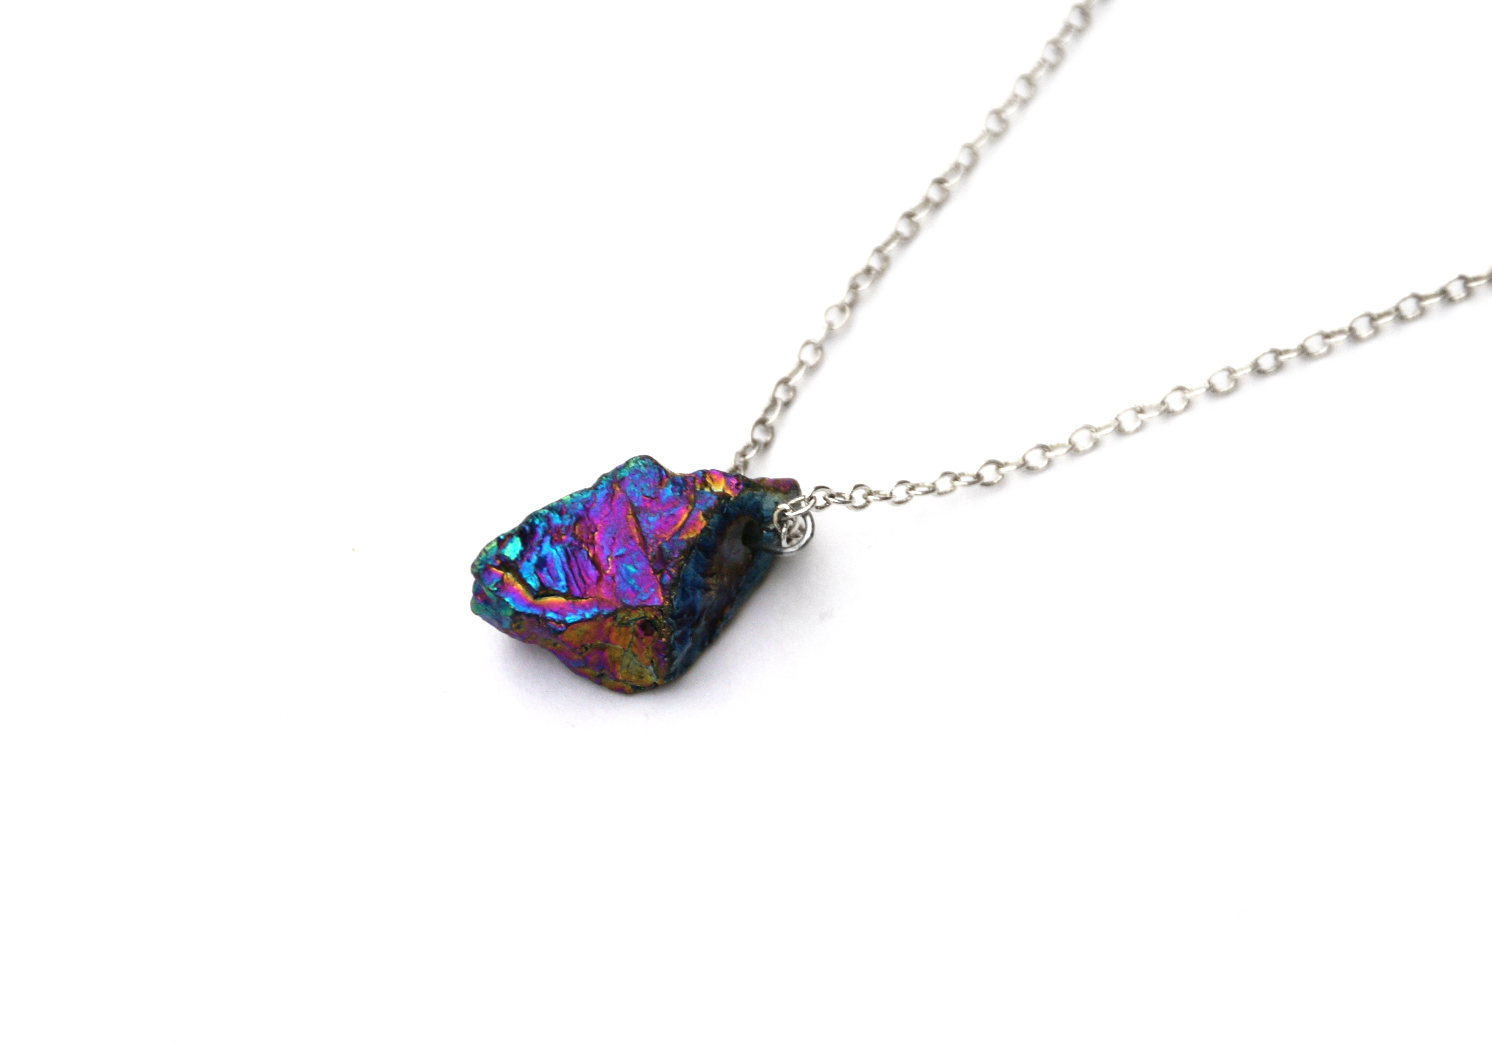 https://www.etsy.com/uk/listing/208225852/rainbow-mineral-necklace-rough-rough